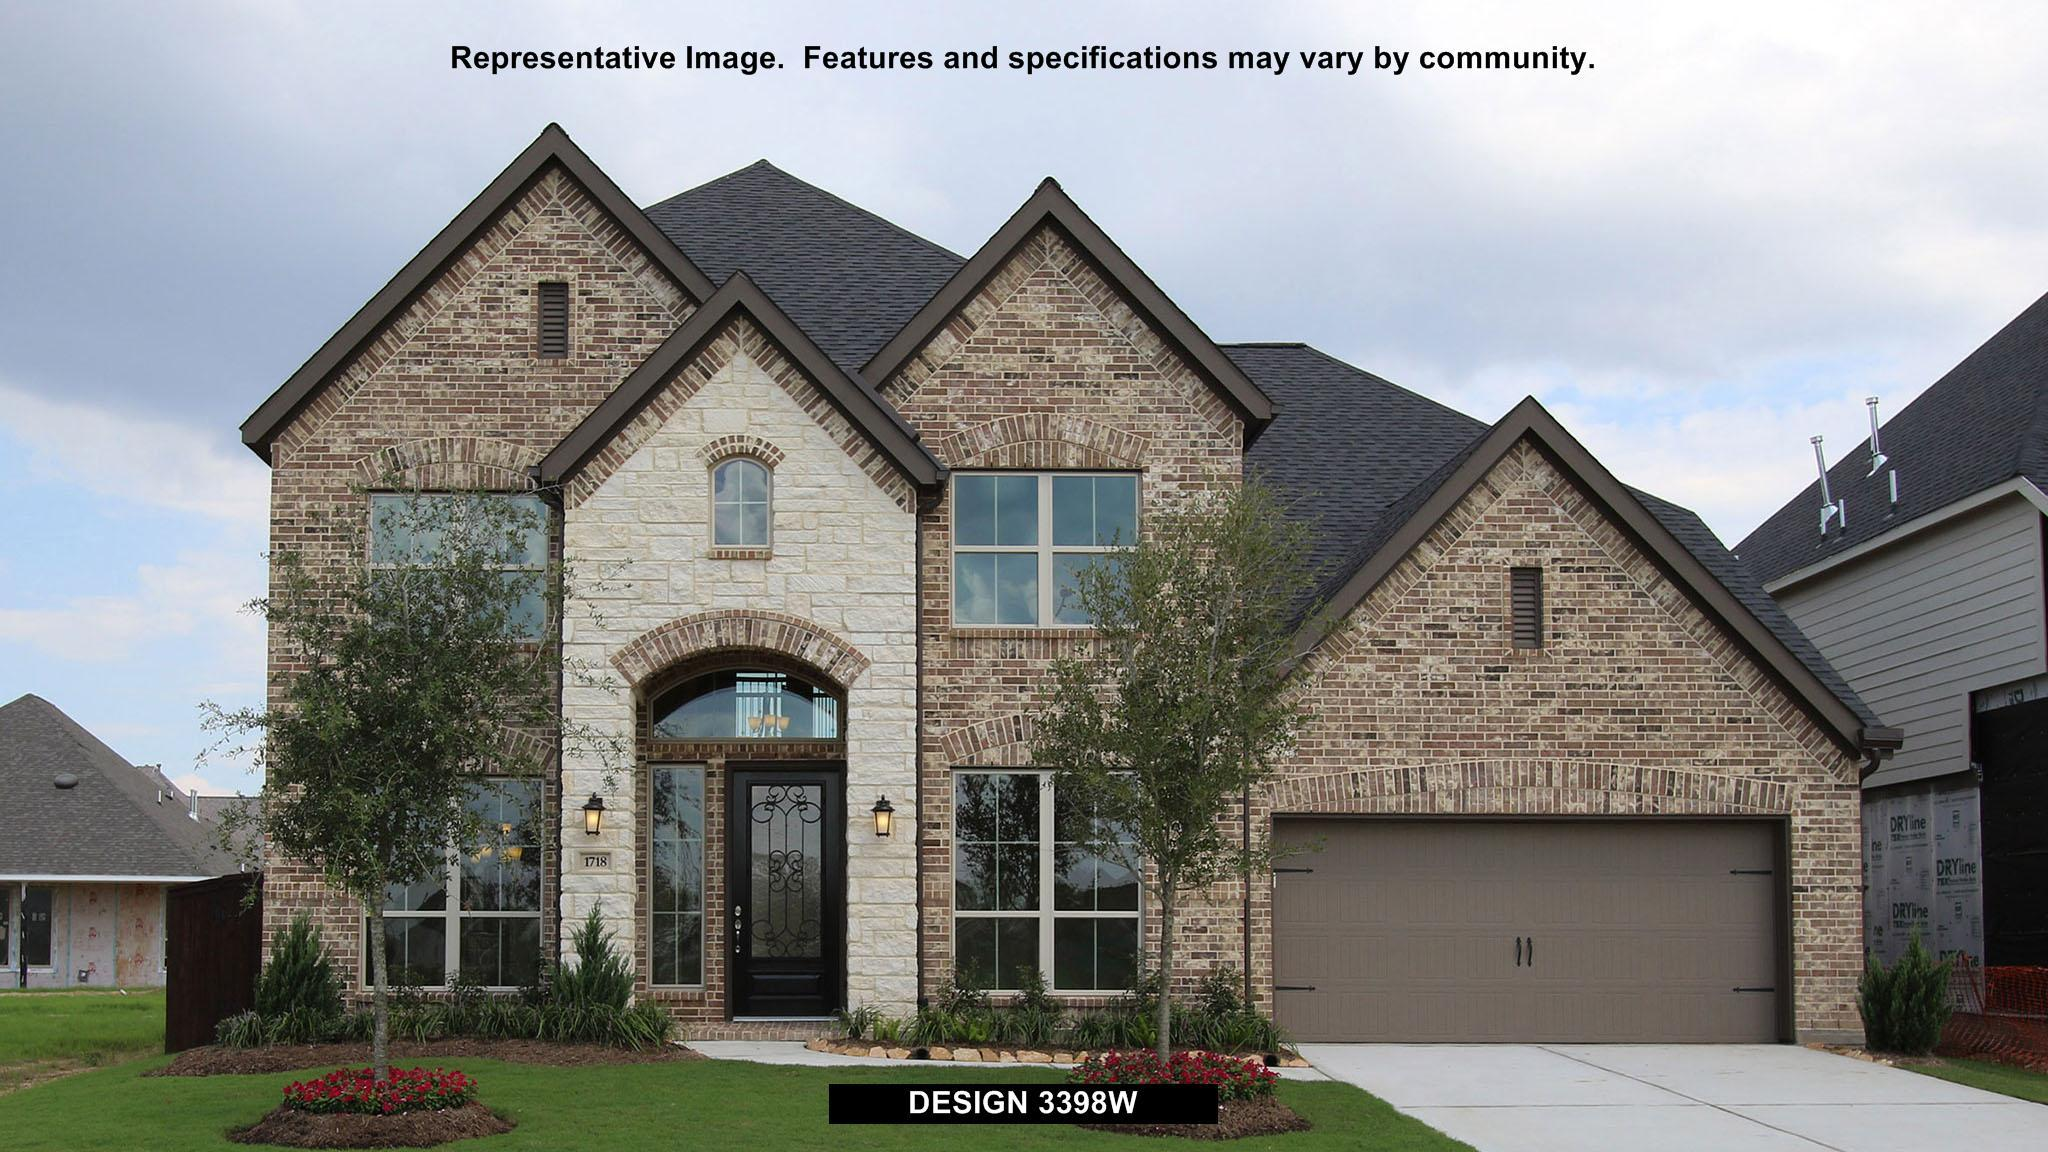 Single Family for Sale at Mill Creek Crossing 65' - 3398w 3004 Saddlehorn Drive Seguin, Texas 78155 United States